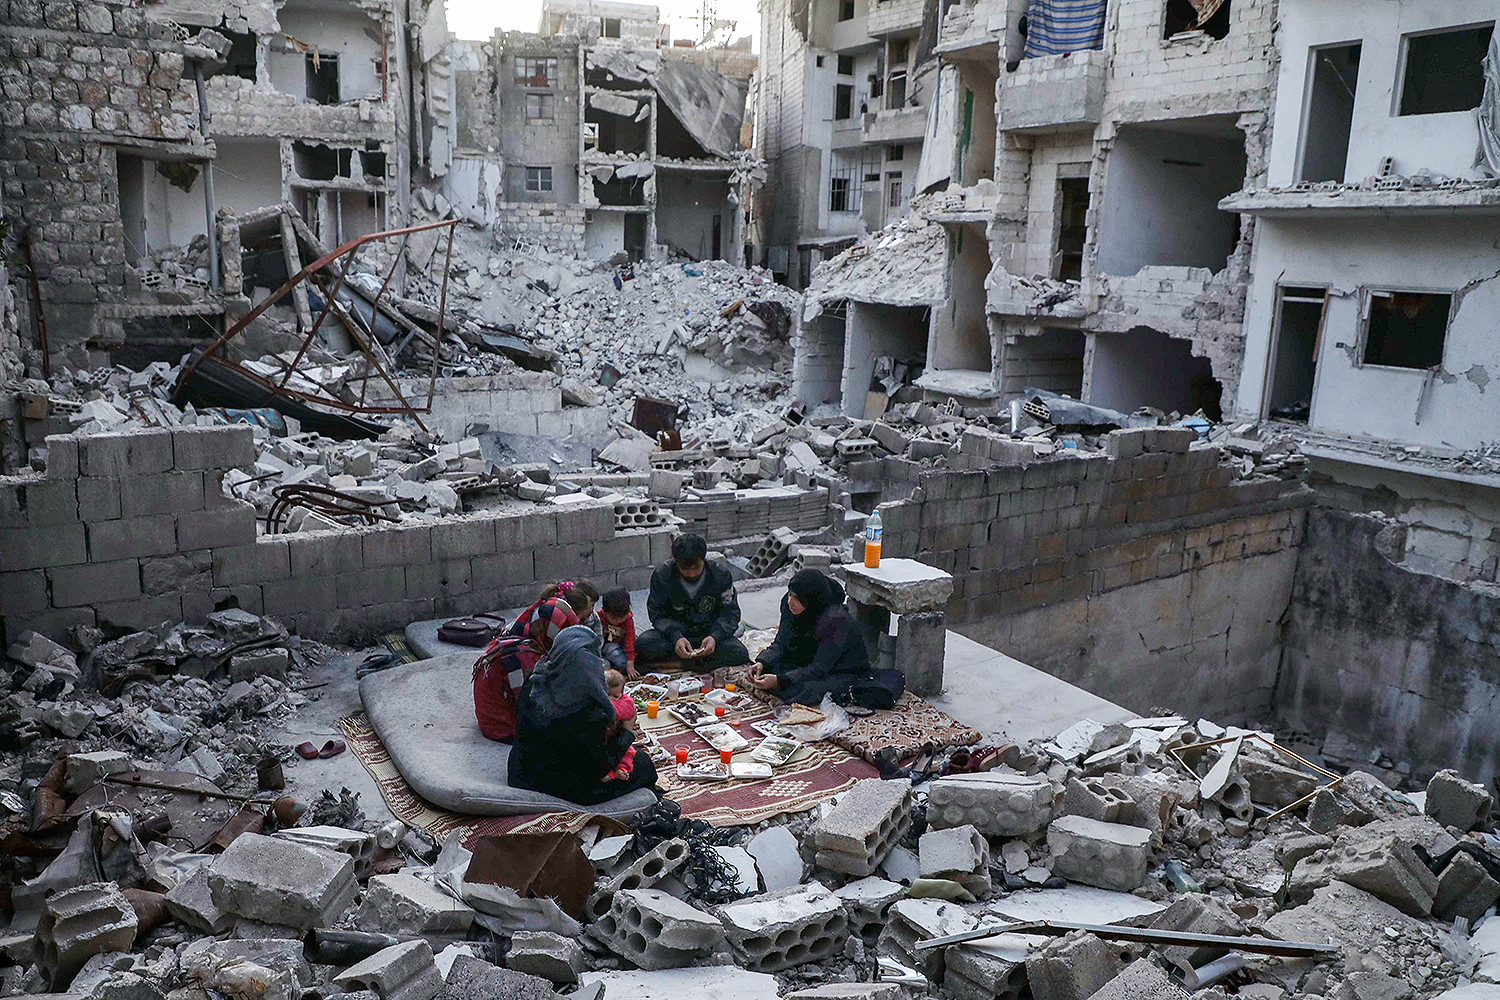 Members of a displaced Syrian family break their Ramadan fast at a sunset Iftar meal in the midst of the rubble of their destroyed home in Ariha, in the Idlib province, on May 4. The family returned to the town for one day after fleeing during a previous military assault by Syrian government forces and their allies. AAREF WATAD/AFP via Getty Images